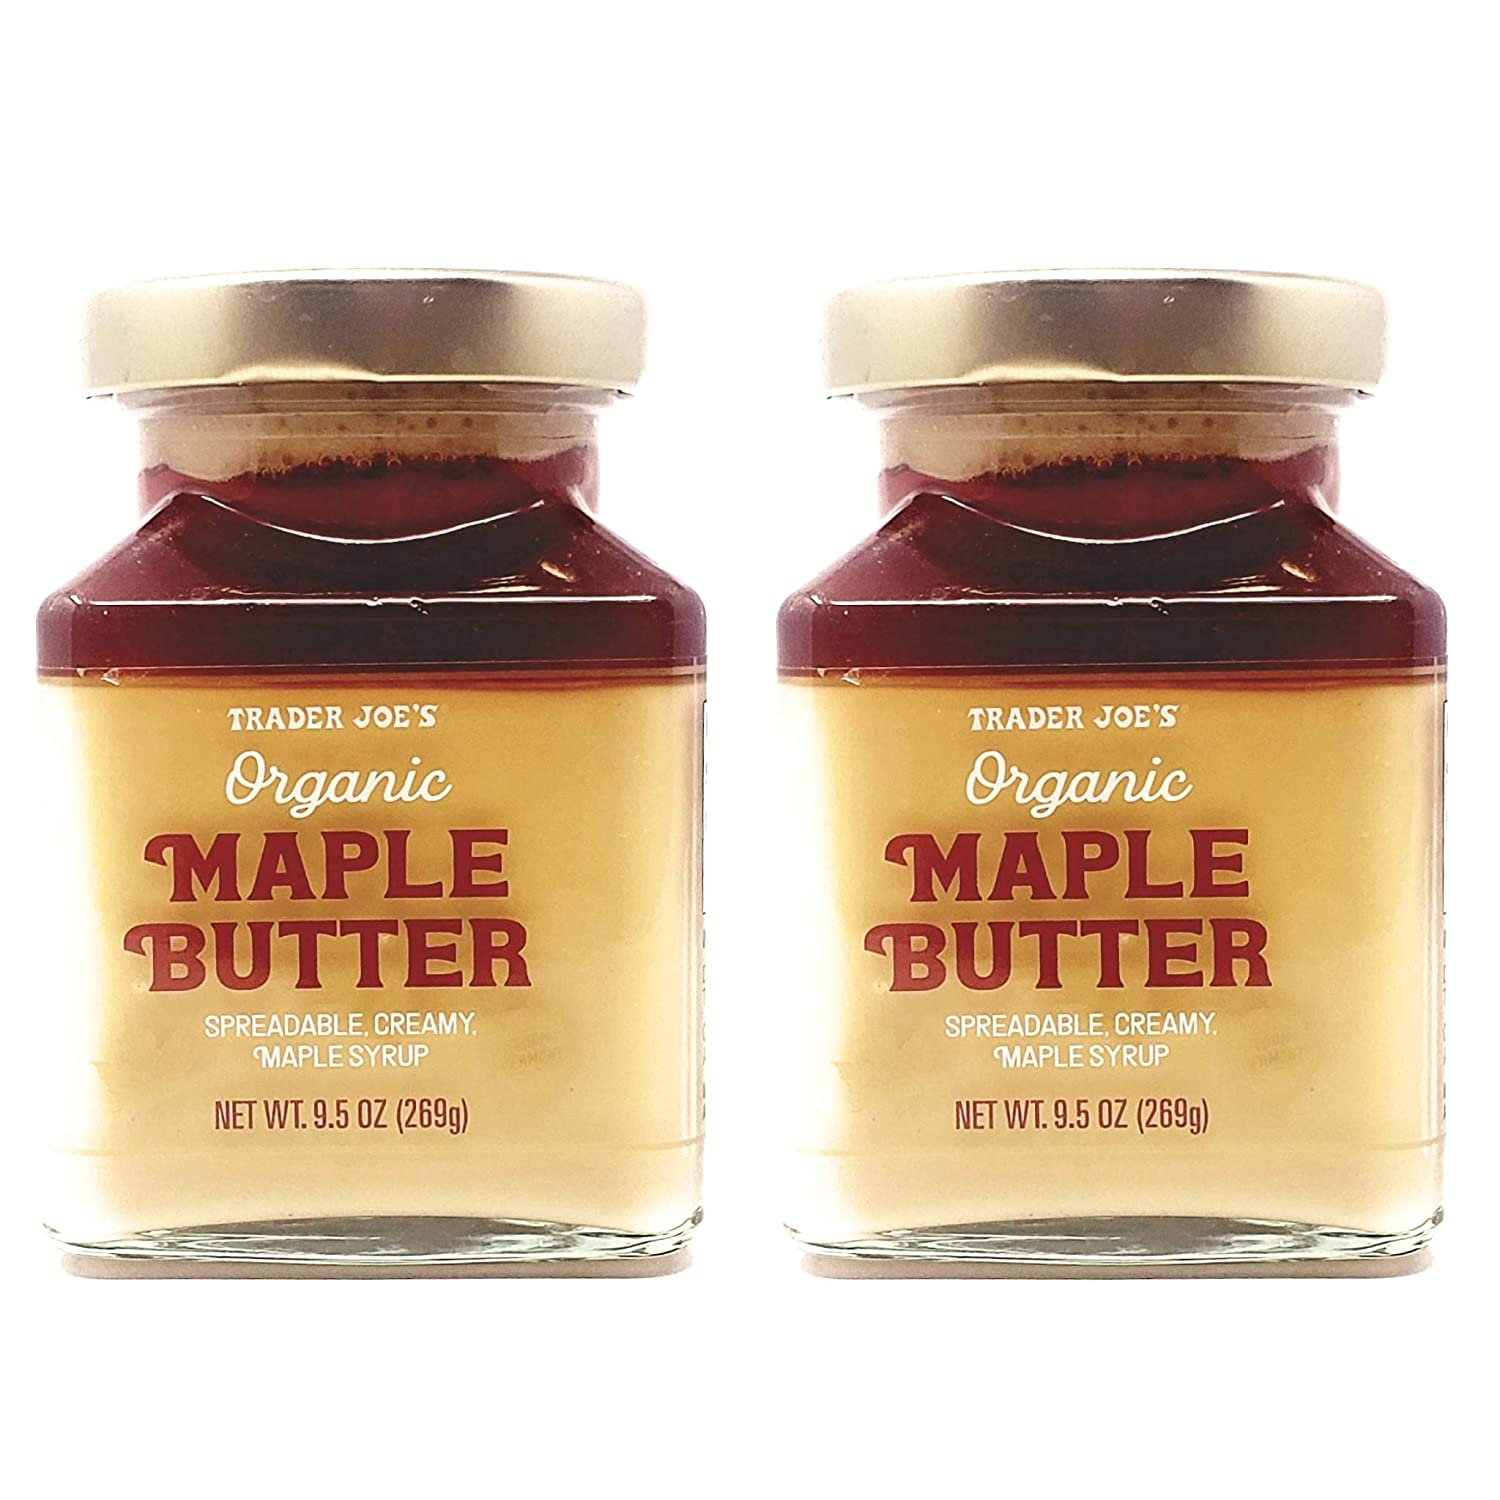 Trader Joes Organic Maple Butter - Pack of 2 Jars - 19 oz Total - Spreadable Creamy Maple Syrup